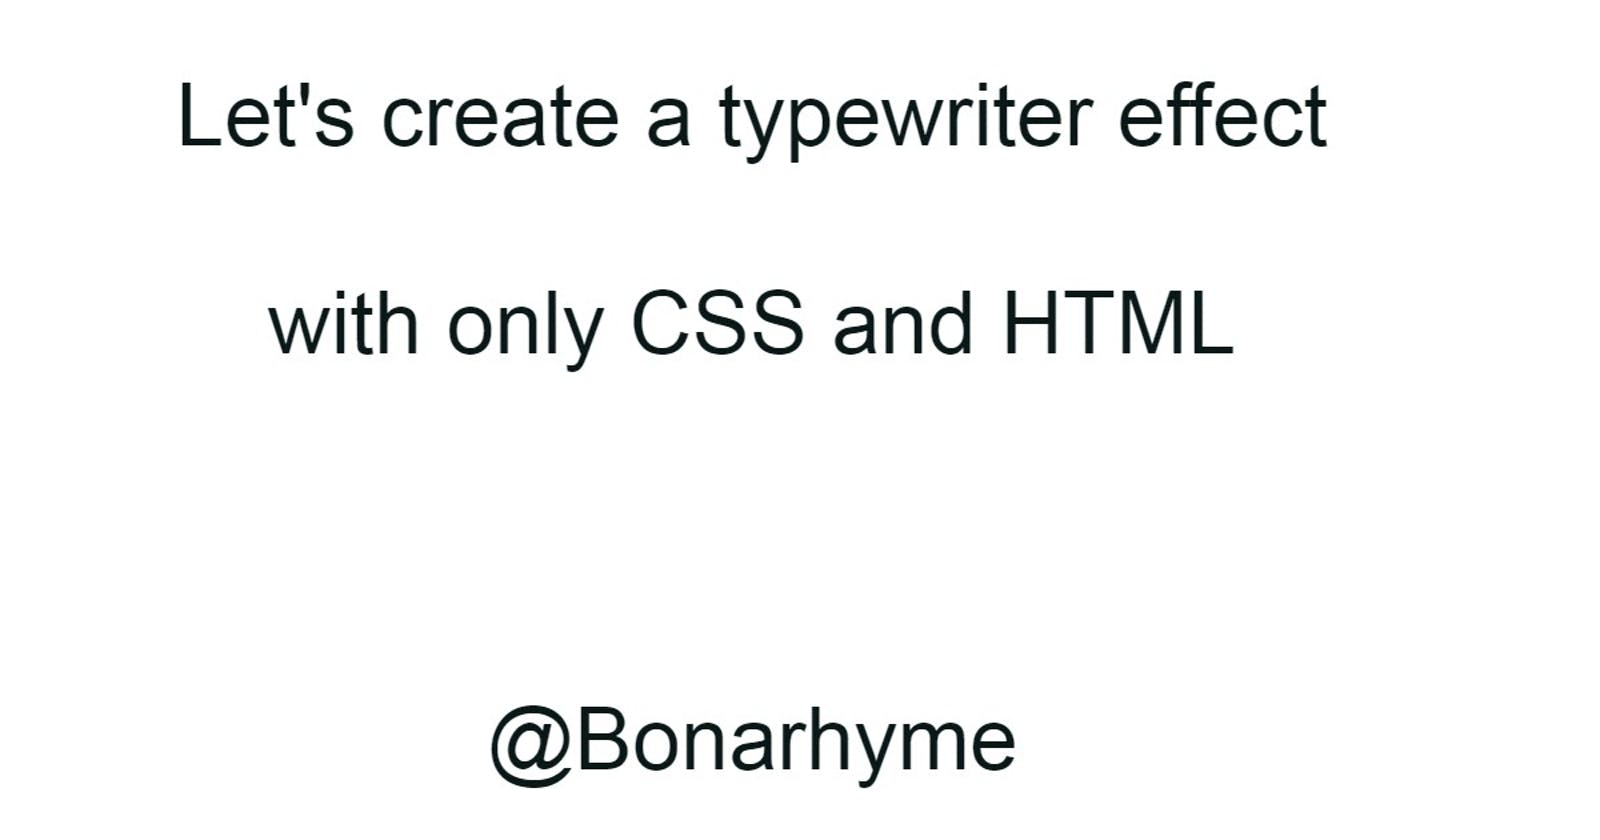 Let's create a typewriter effect with only CSS and HTML